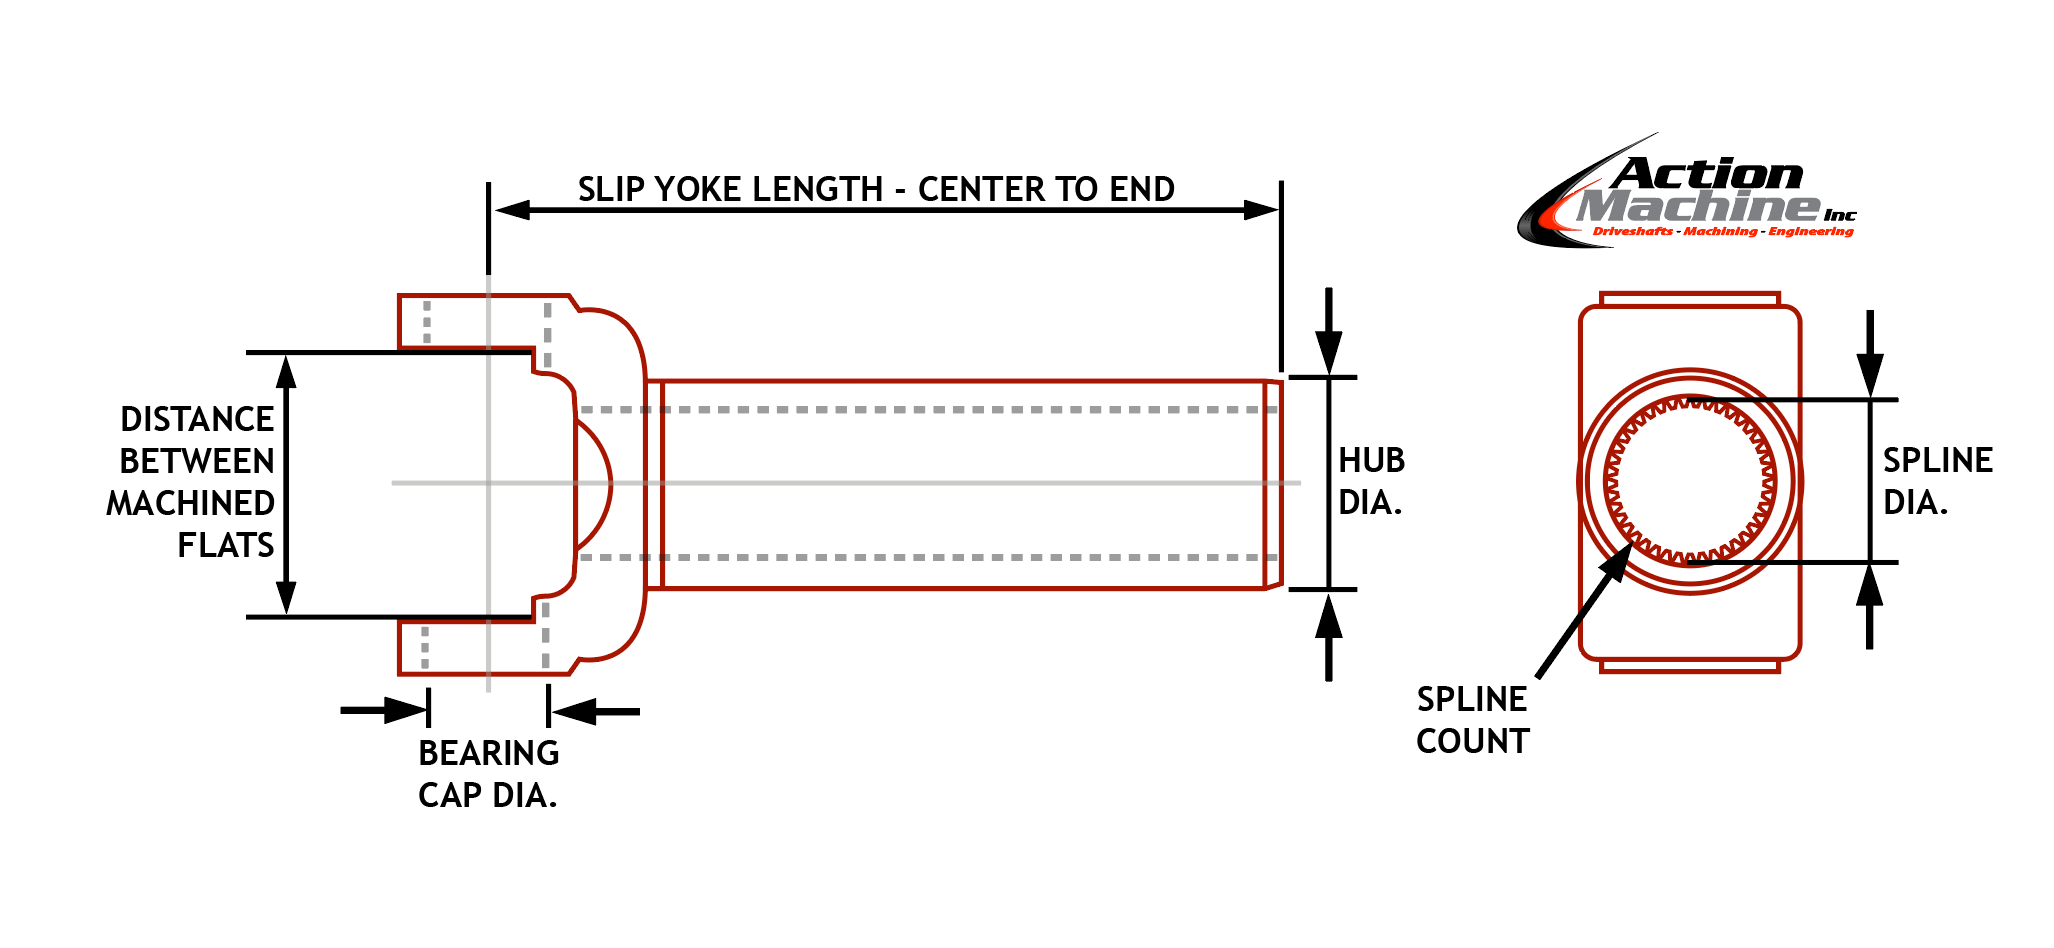 Transmission Slip Yoke Diagram